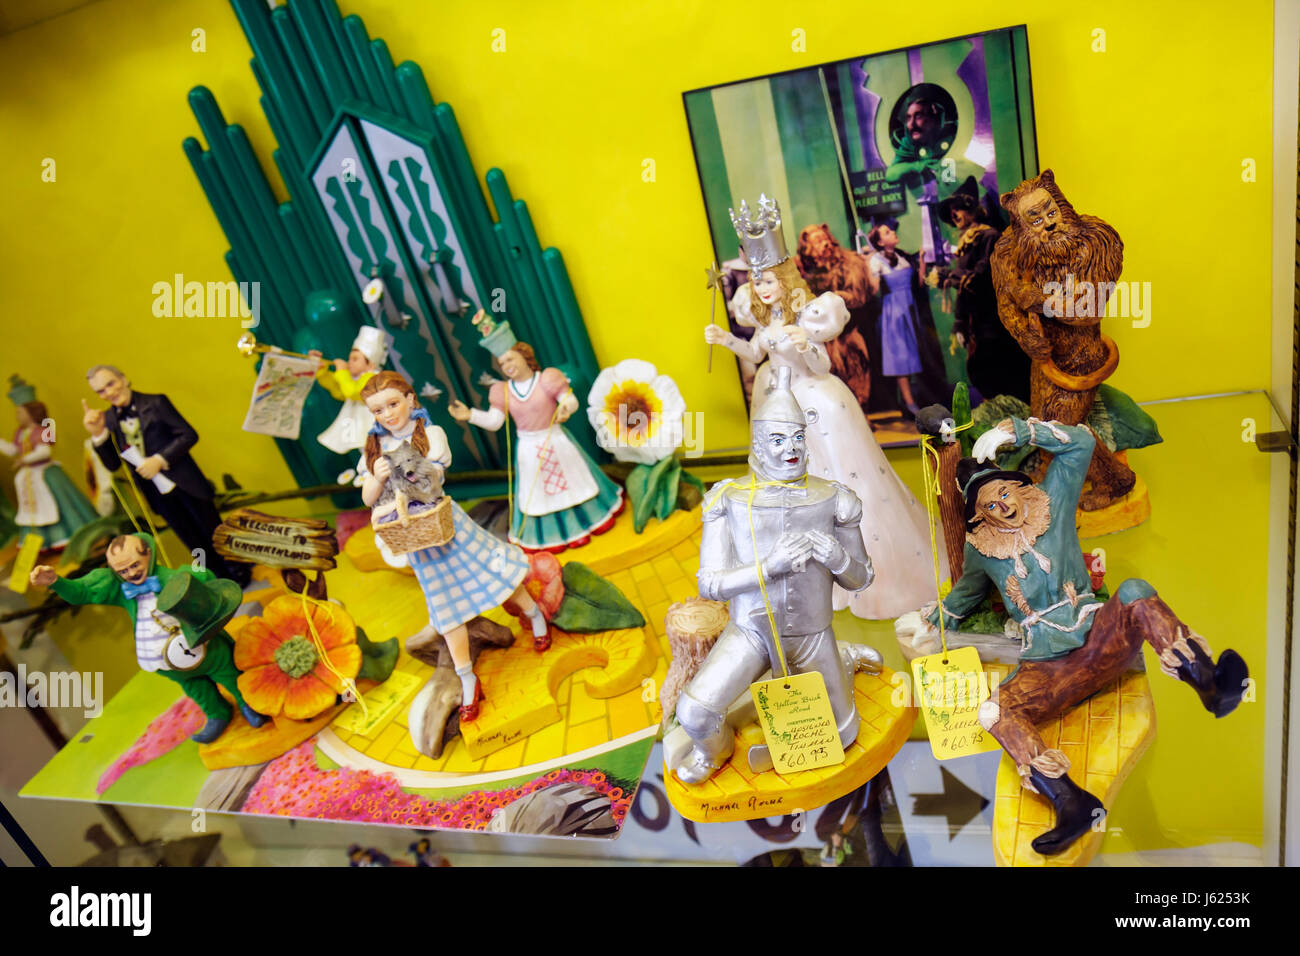 Indiana Chesterton Yellow Brick Road Gift Shop and Wizard of Oz Fantasy Museum figurines collectibles memorabilia - Stock Image